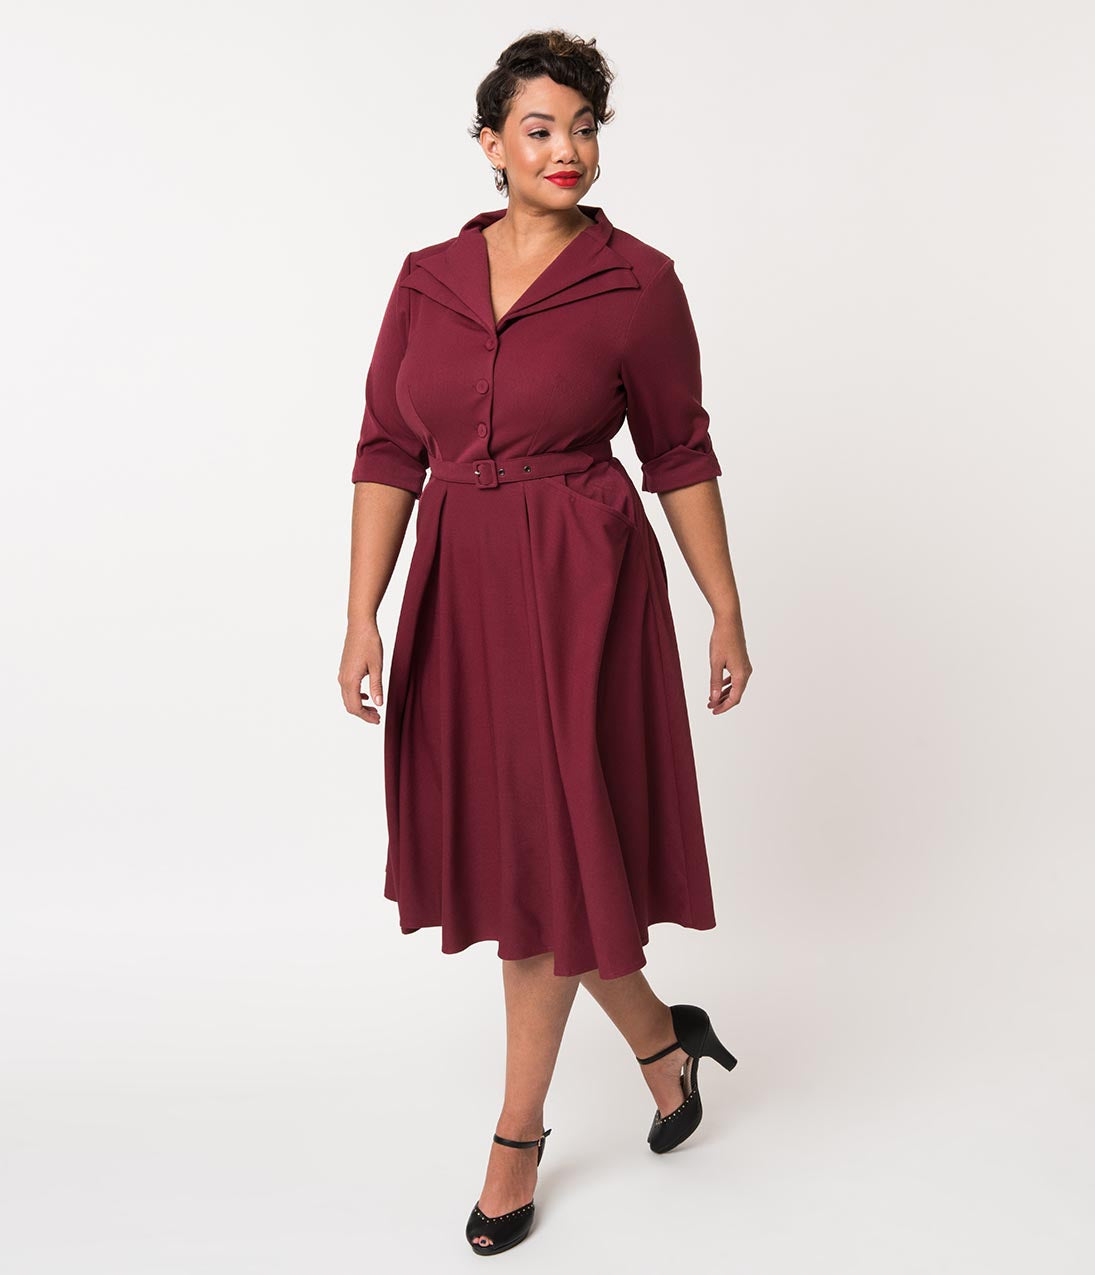 1950s Housewife Dress | 50s Day Dresses Miss Candyfloss Plus Size 1940S Wine Sleeved Davignon Swing Dress $138.00 AT vintagedancer.com